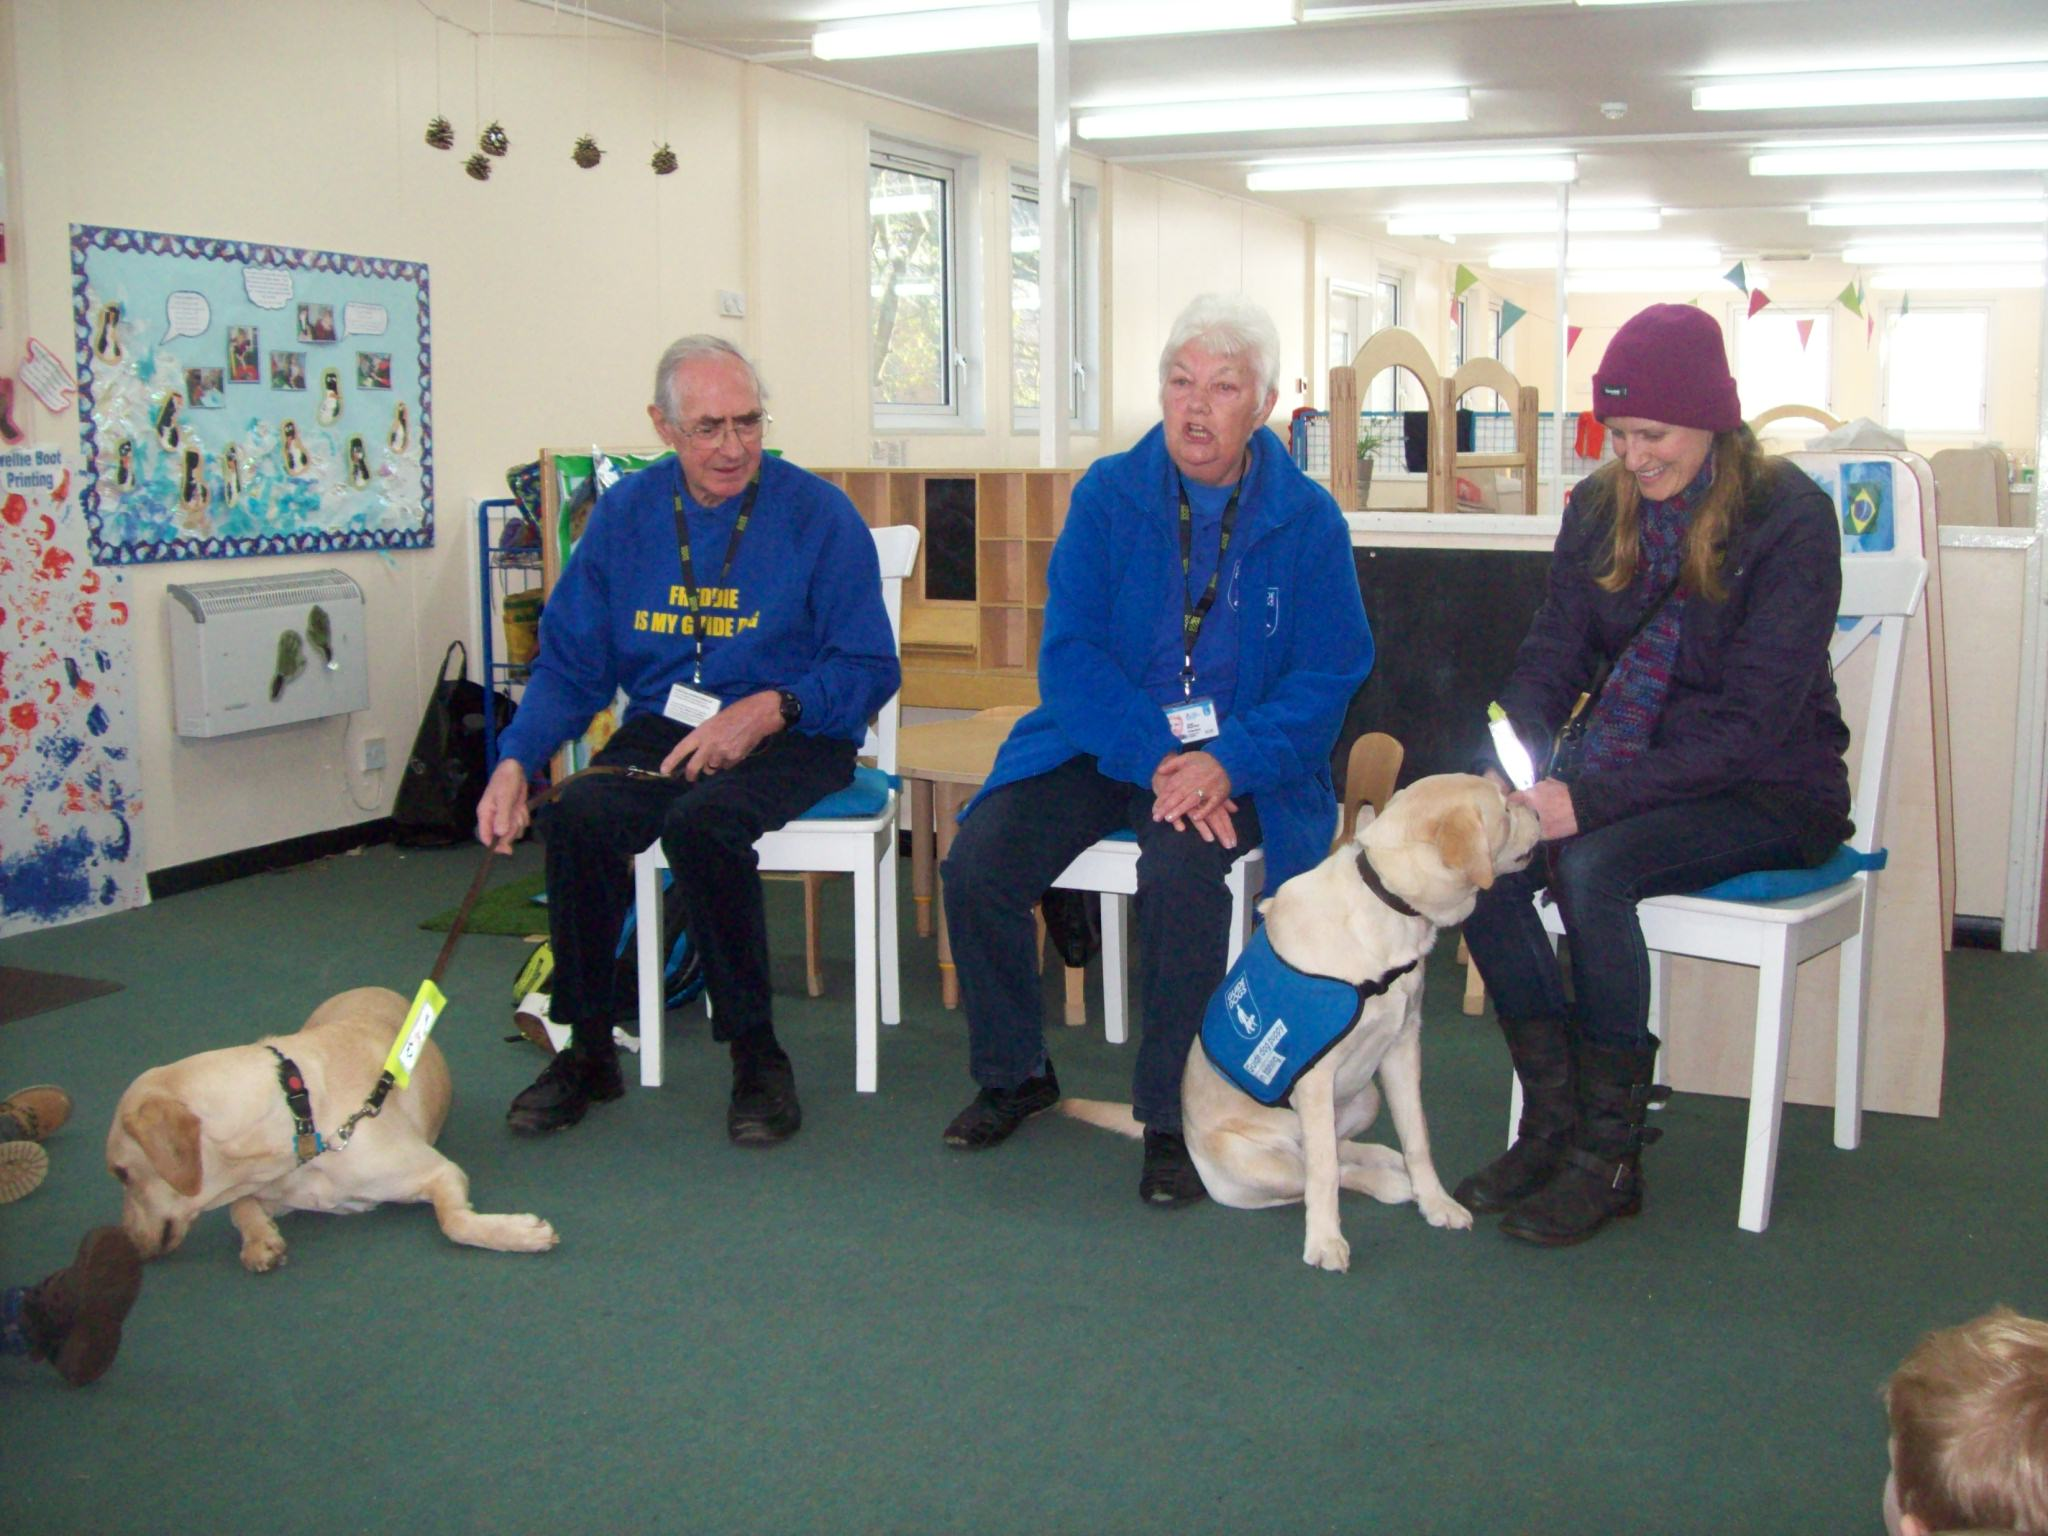 Guide dogs help children learn about the world around them.